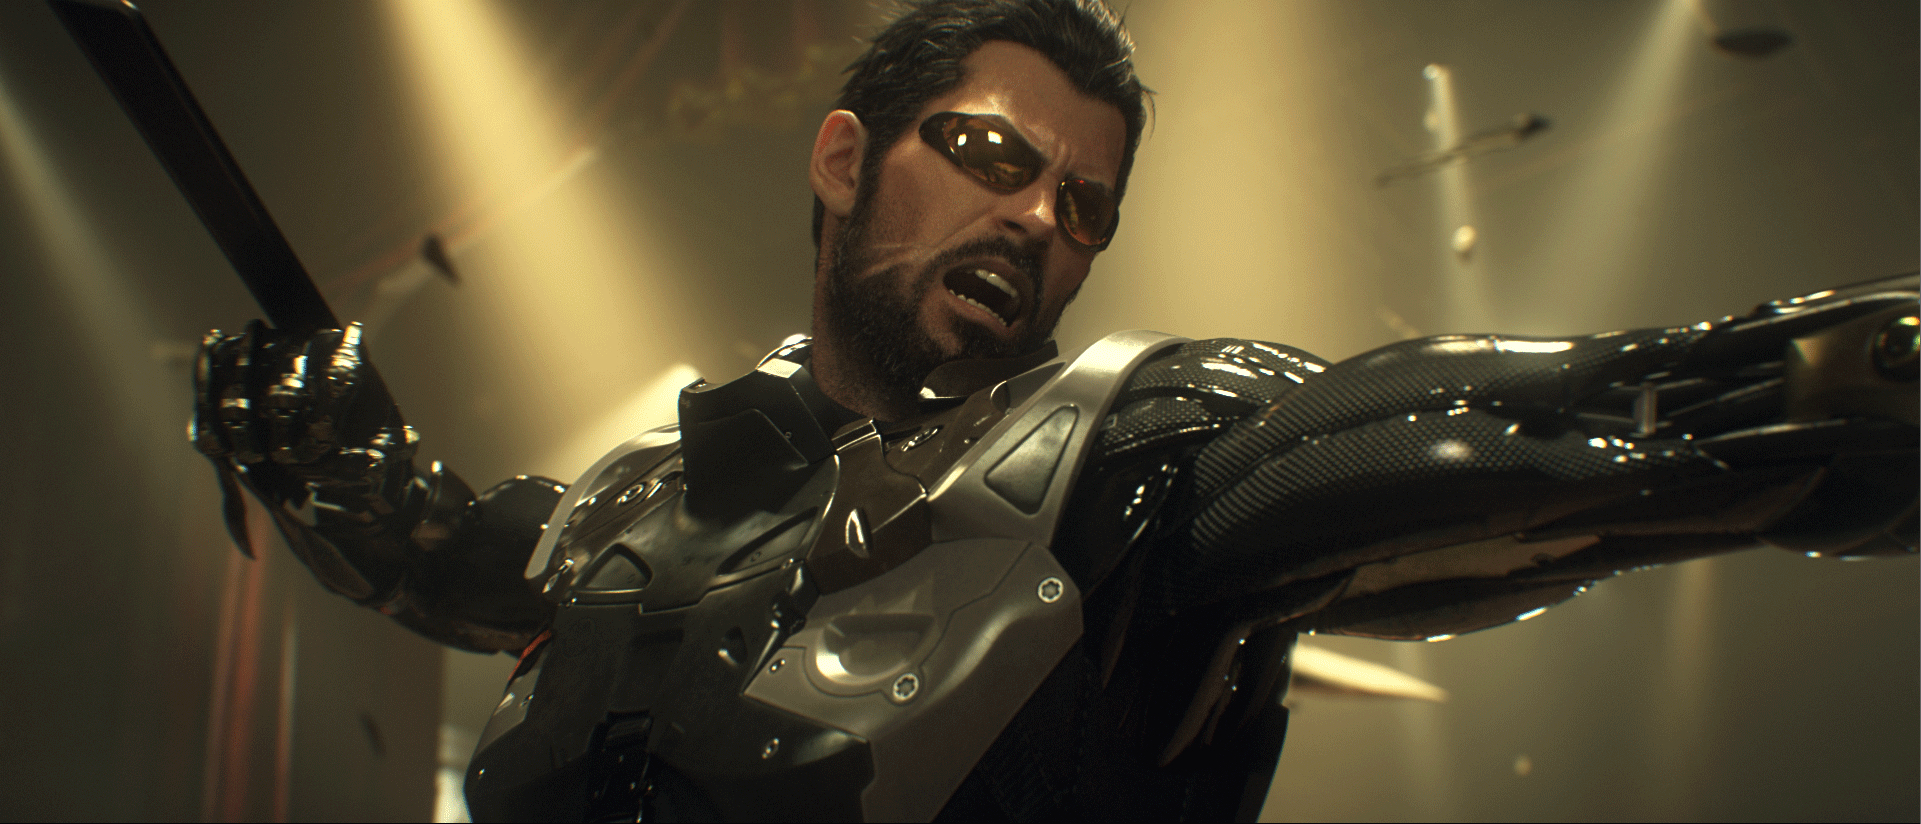 u0026#39;Deus Ex: Mankind Dividedu0026#39; Release Date: New Trailer Expands On Story And Gameplay